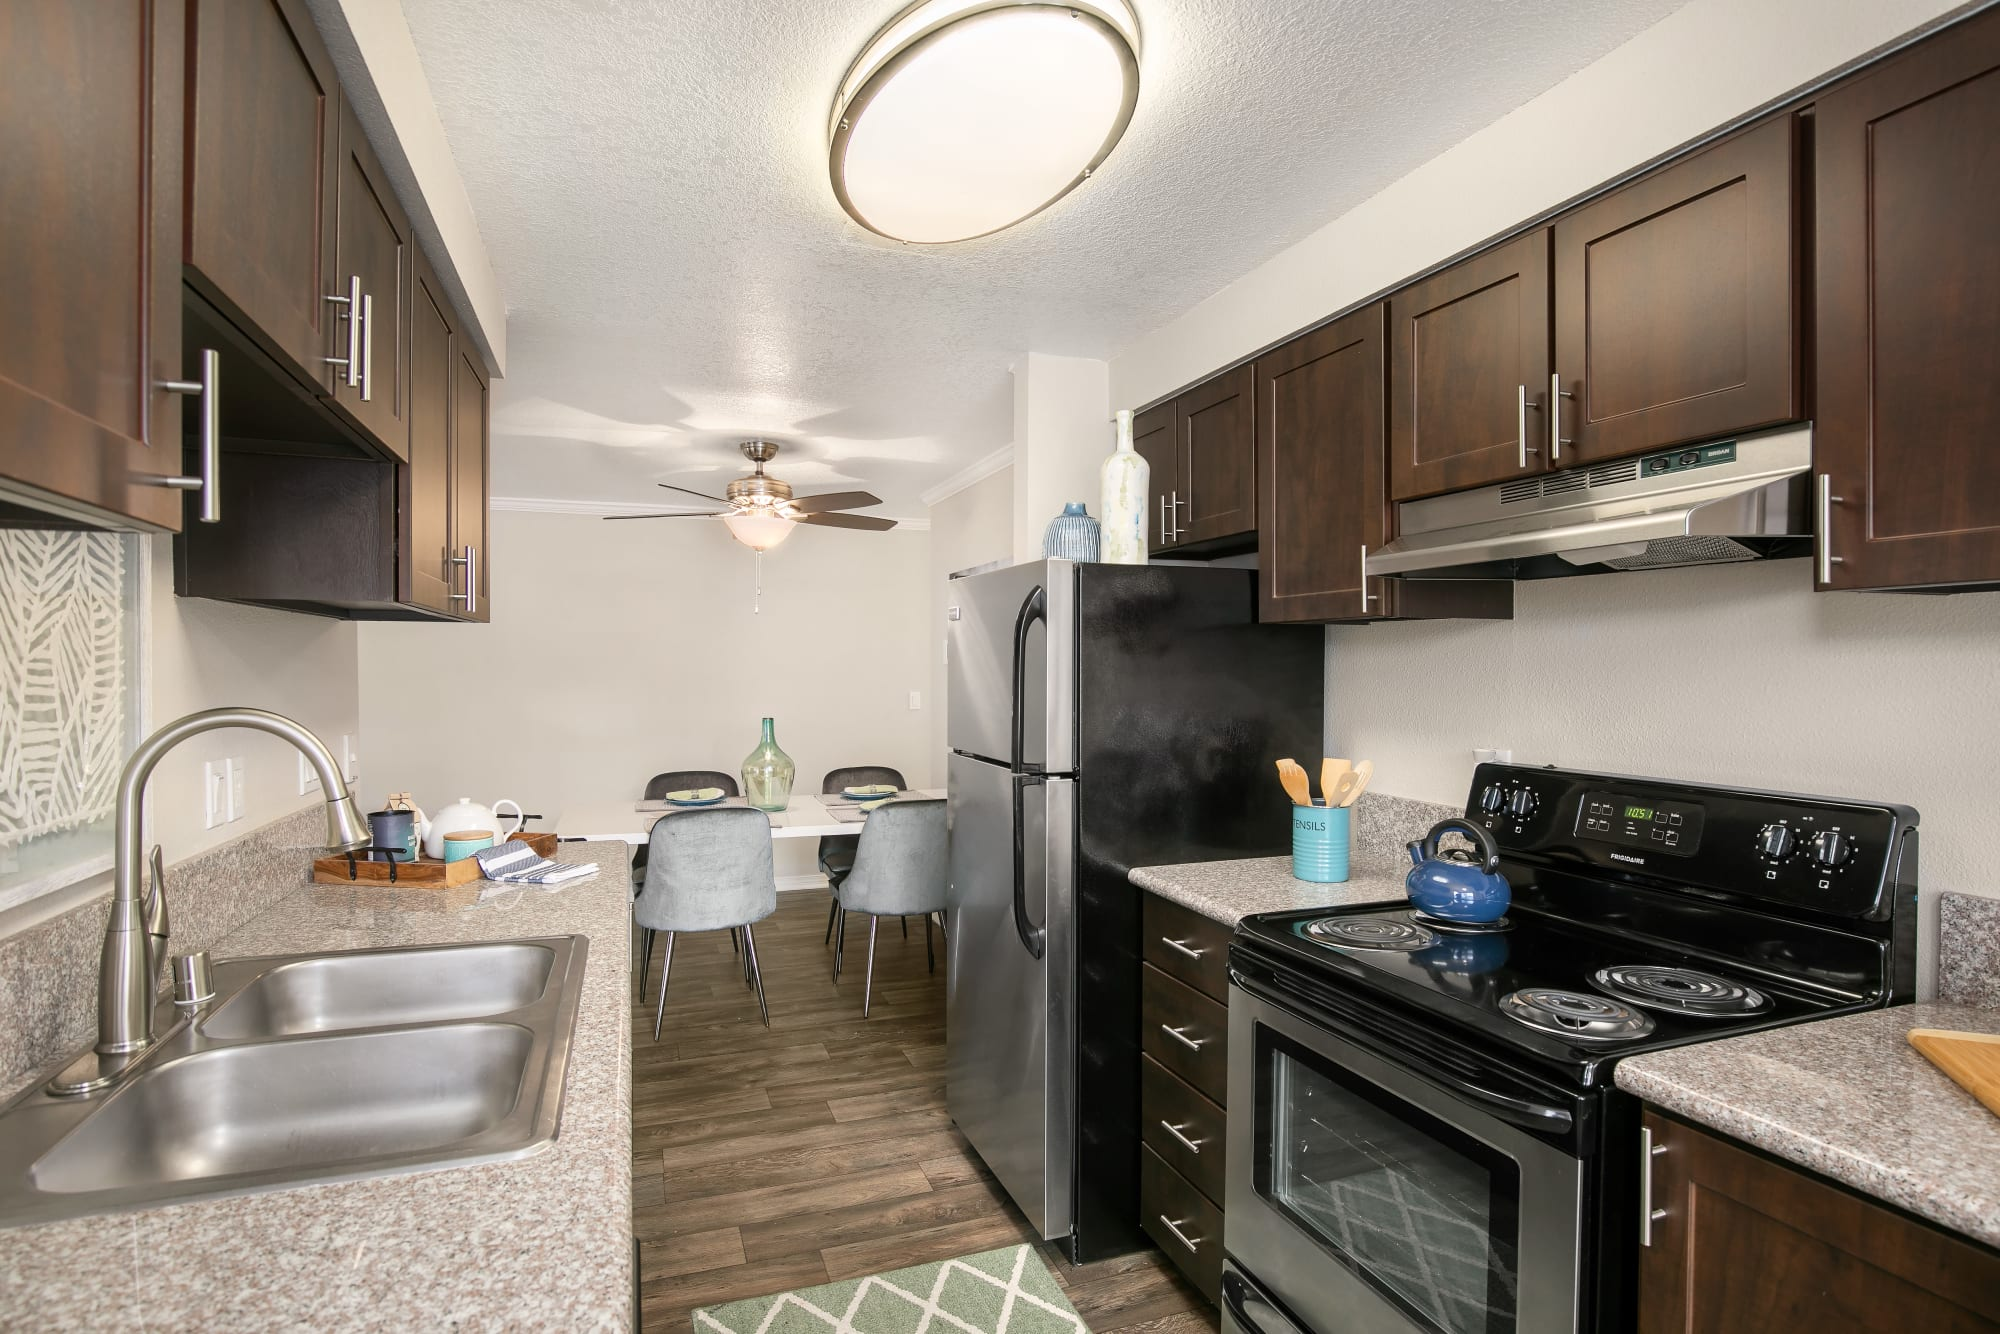 Fully Equipped Kitchen with stainless steel appliances at Walnut Grove Landing Apartments in Vancouver, WA